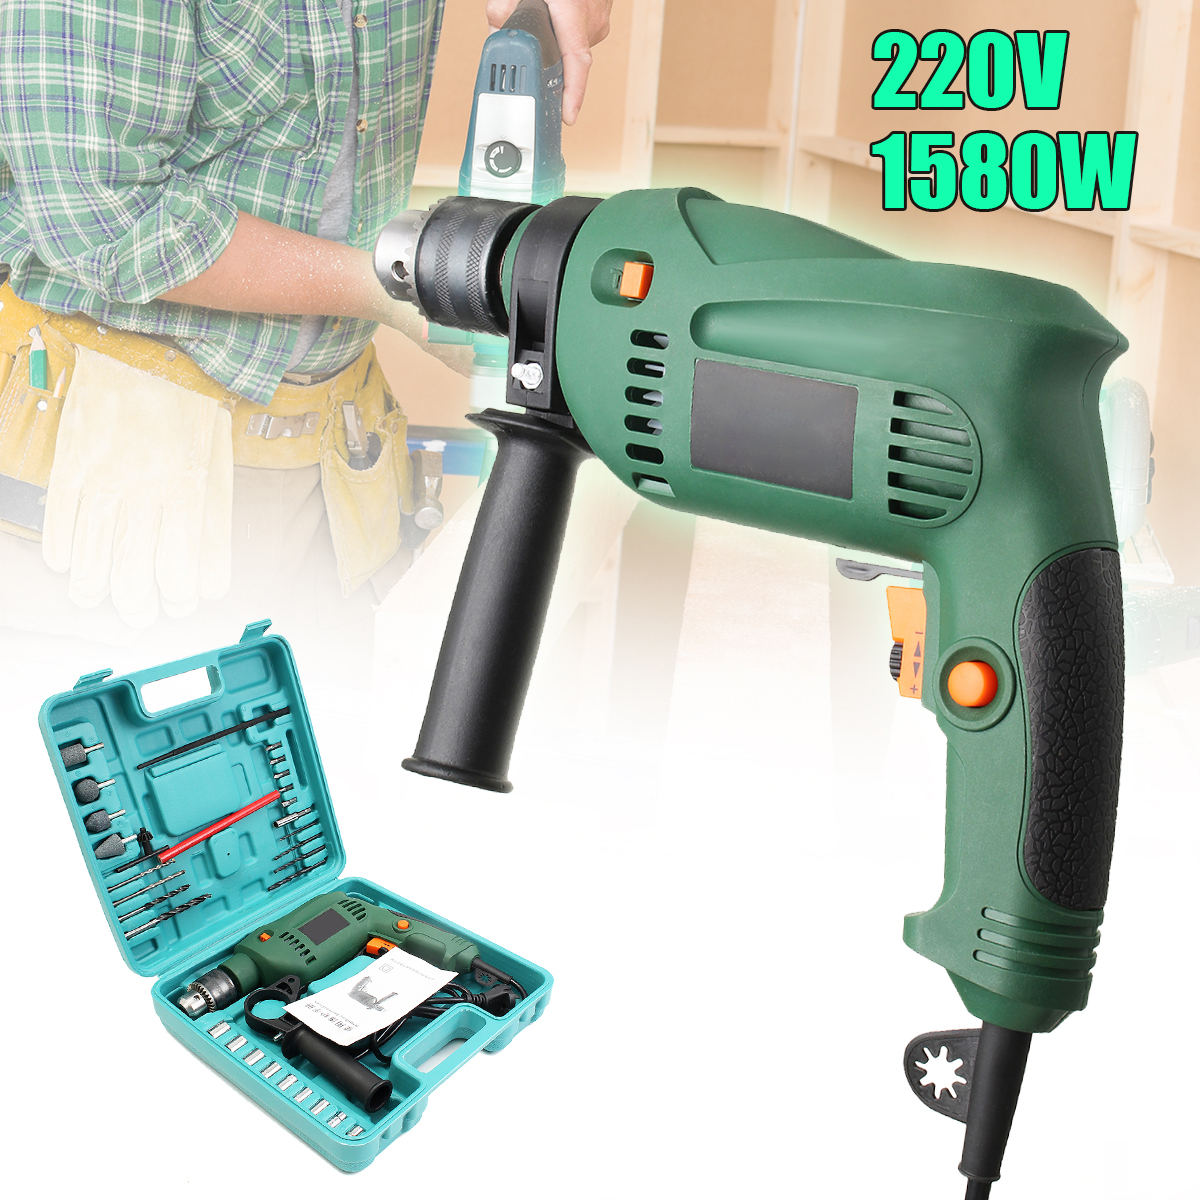 220V Power Corded Drill Kit Electric 1580w   Metal Chuck V/Speed Forward Reverse With Mini Drill Grinding Wheel Hand Tools220V Power Corded Drill Kit Electric 1580w   Metal Chuck V/Speed Forward Reverse With Mini Drill Grinding Wheel Hand Tools